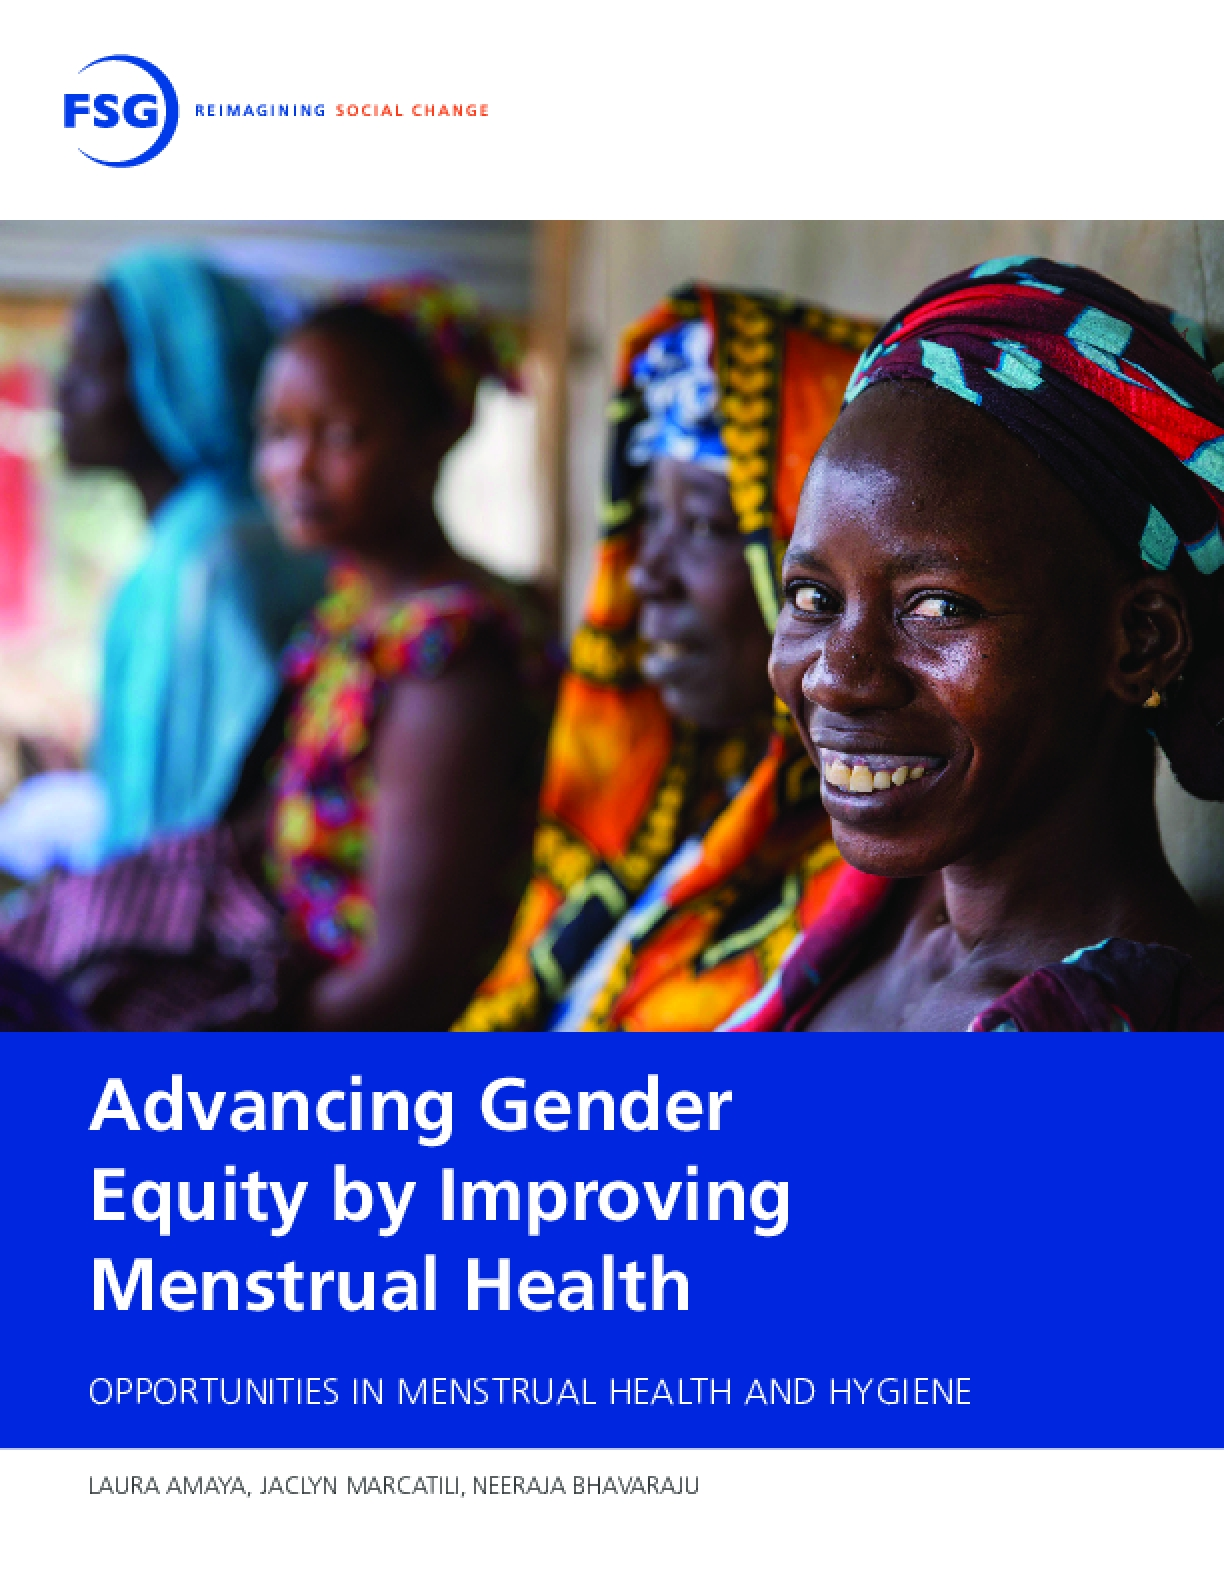 Advancing Gender Equity by Improving Menstrual Health